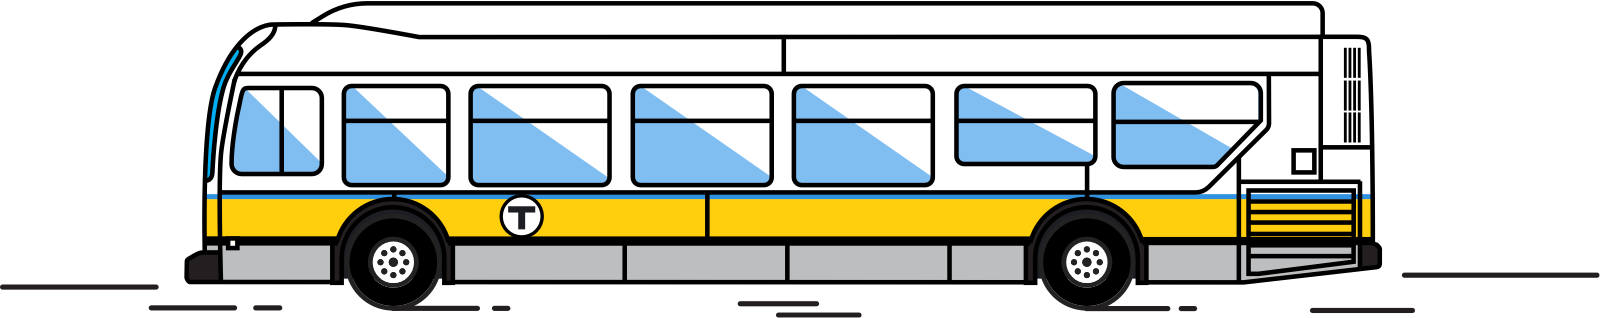 Illustration of a bus departing